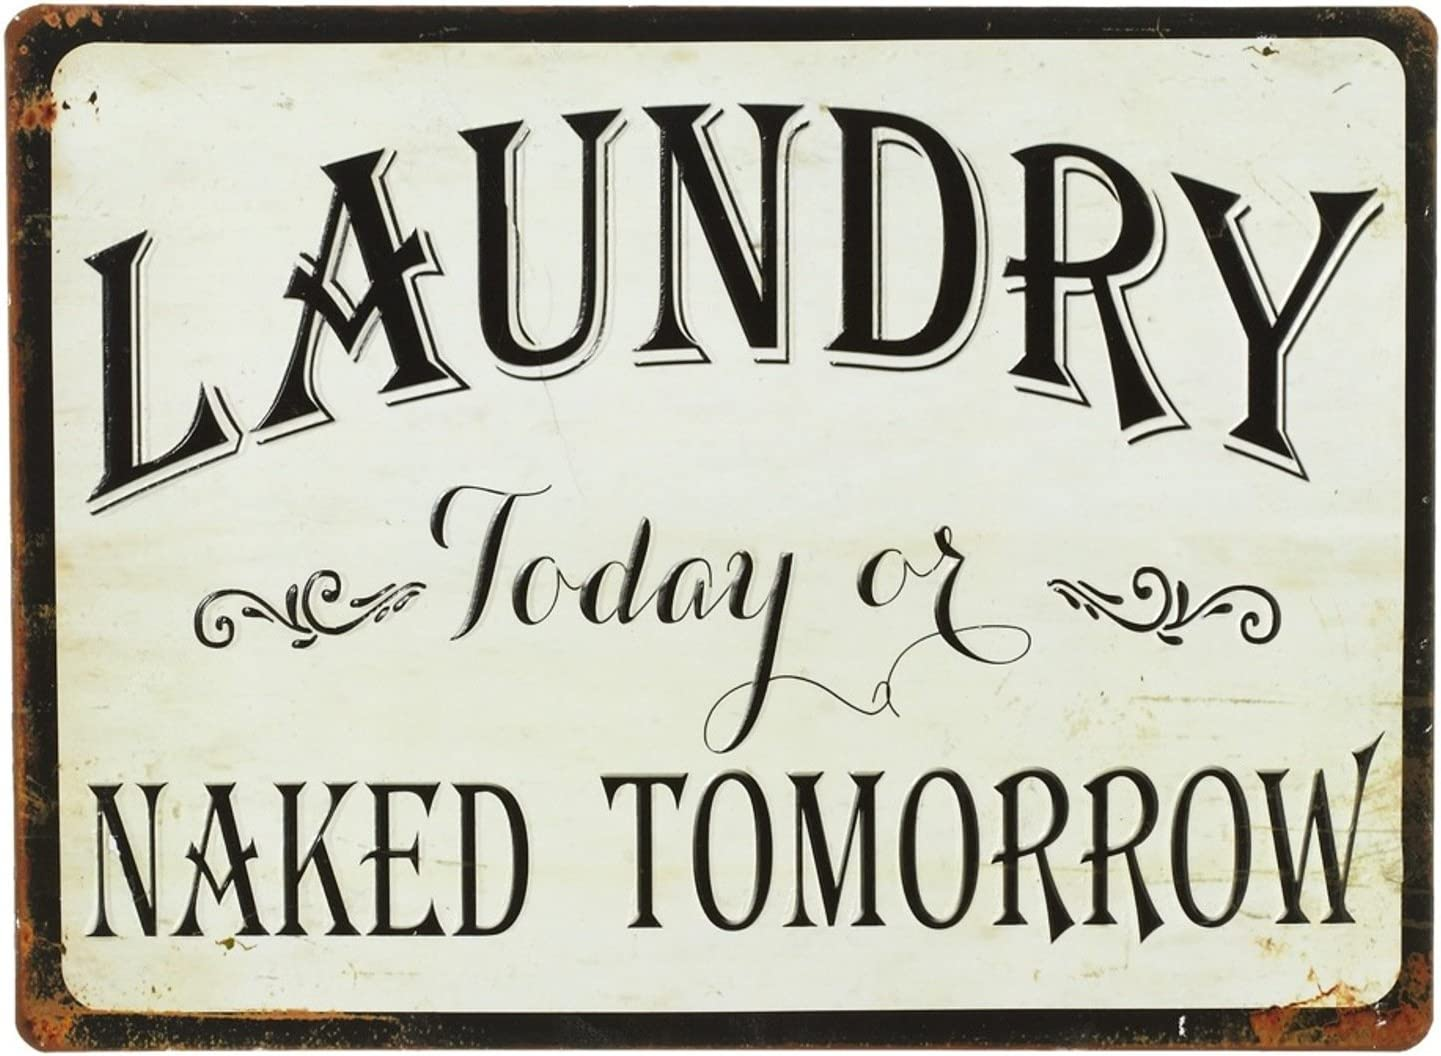 Midwest-CBK Laundry Today or Naked Tomorrow Metal Rustic Wall Sign 13.75 Inches